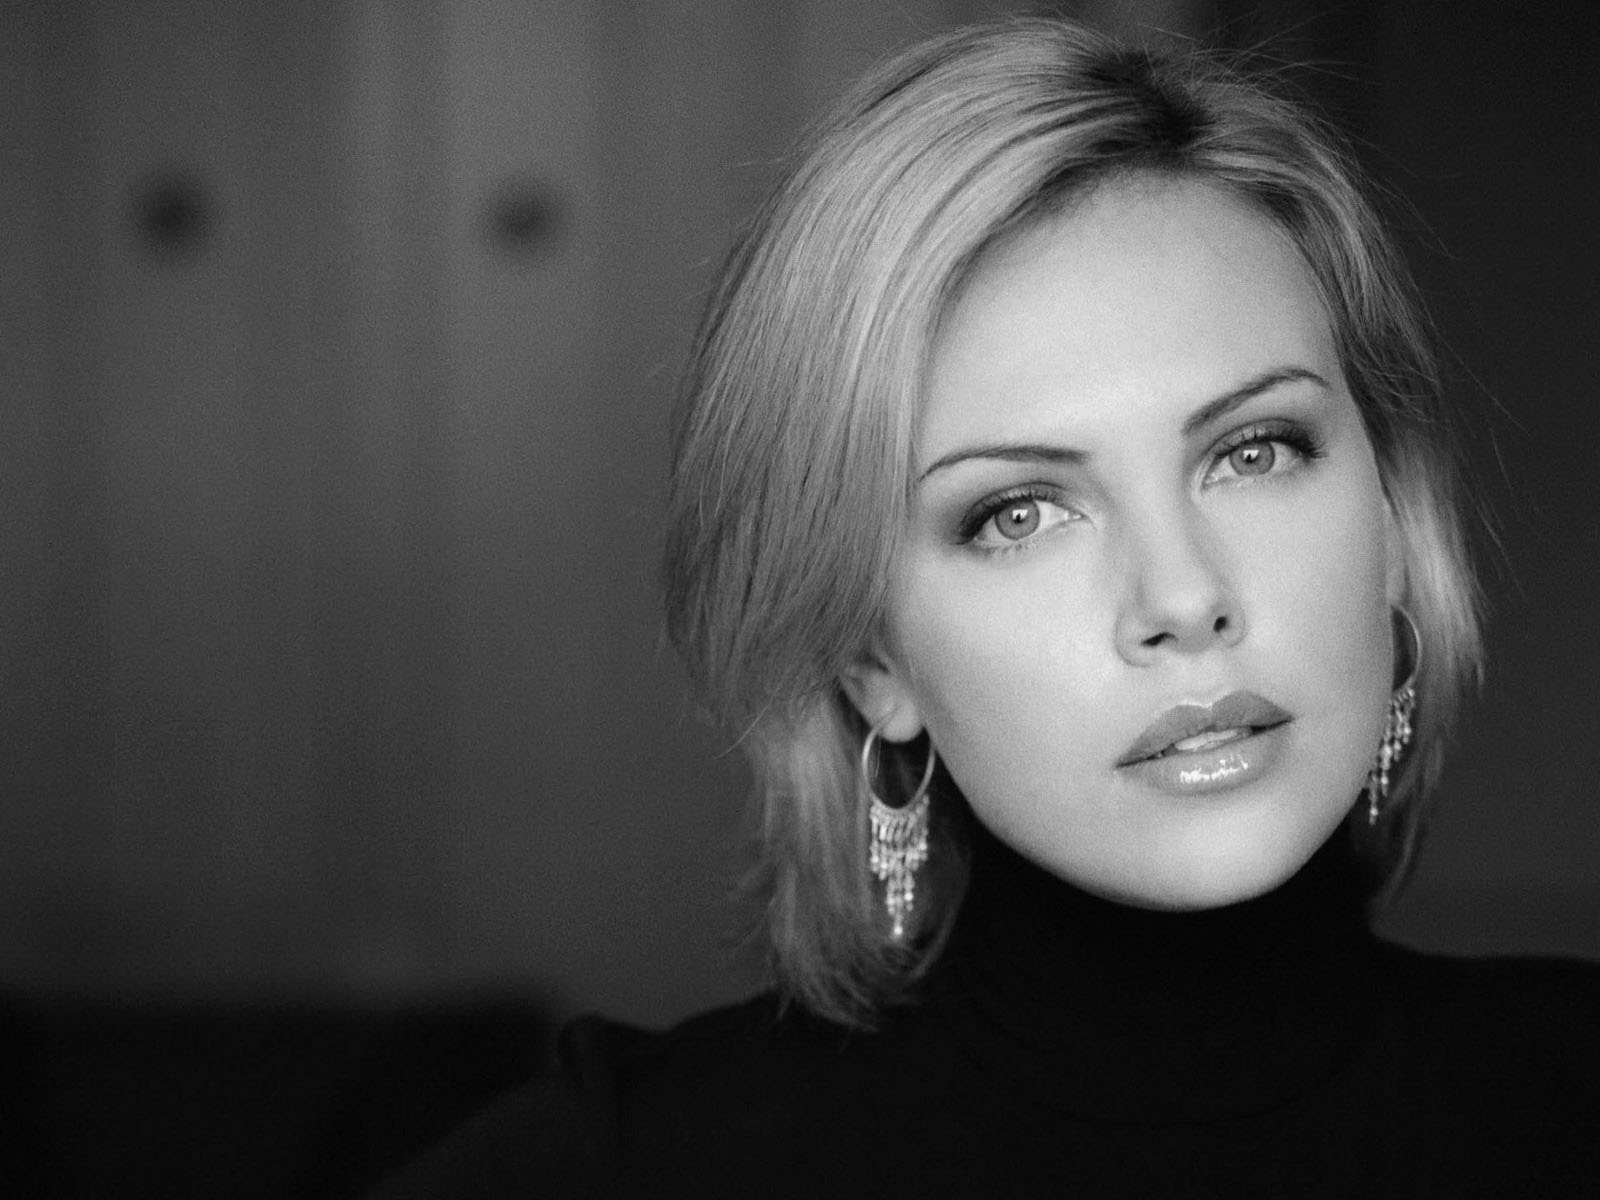 stunning charlize theron cute look hd background free wallpaper desktop mobile